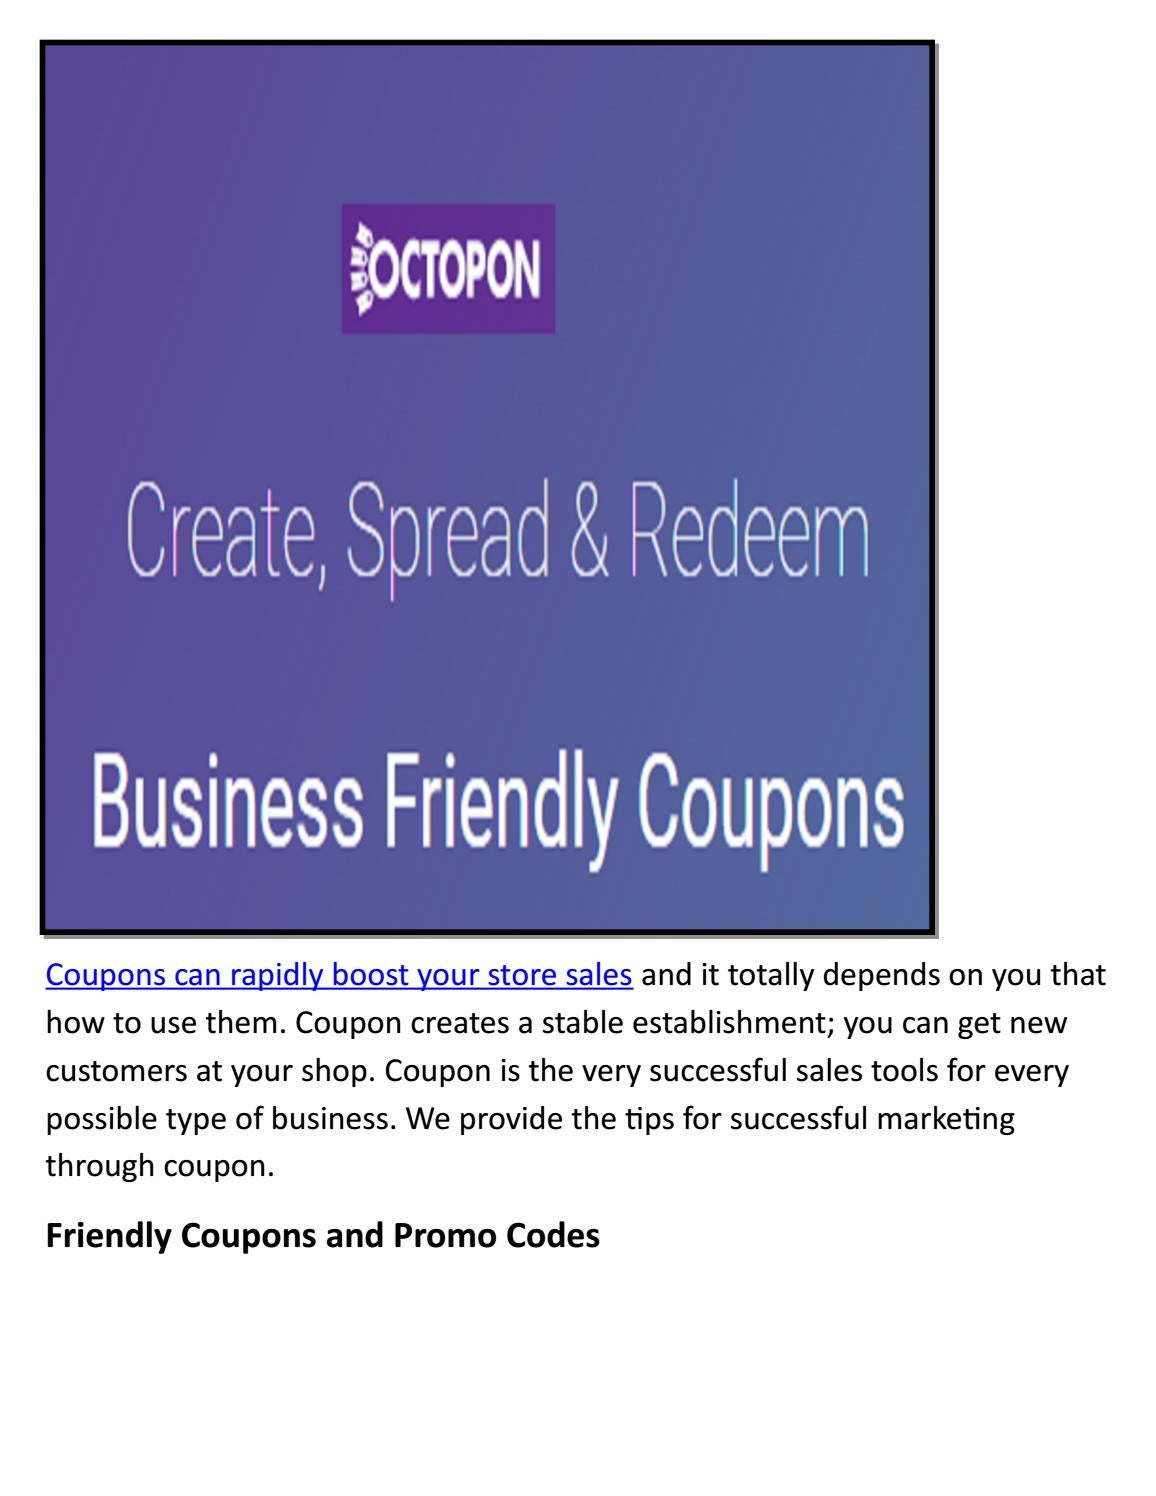 photo regarding Boost Coupons Printable known as Produce your personalized coupon absolutely free printable via Octopon Inc - issuu